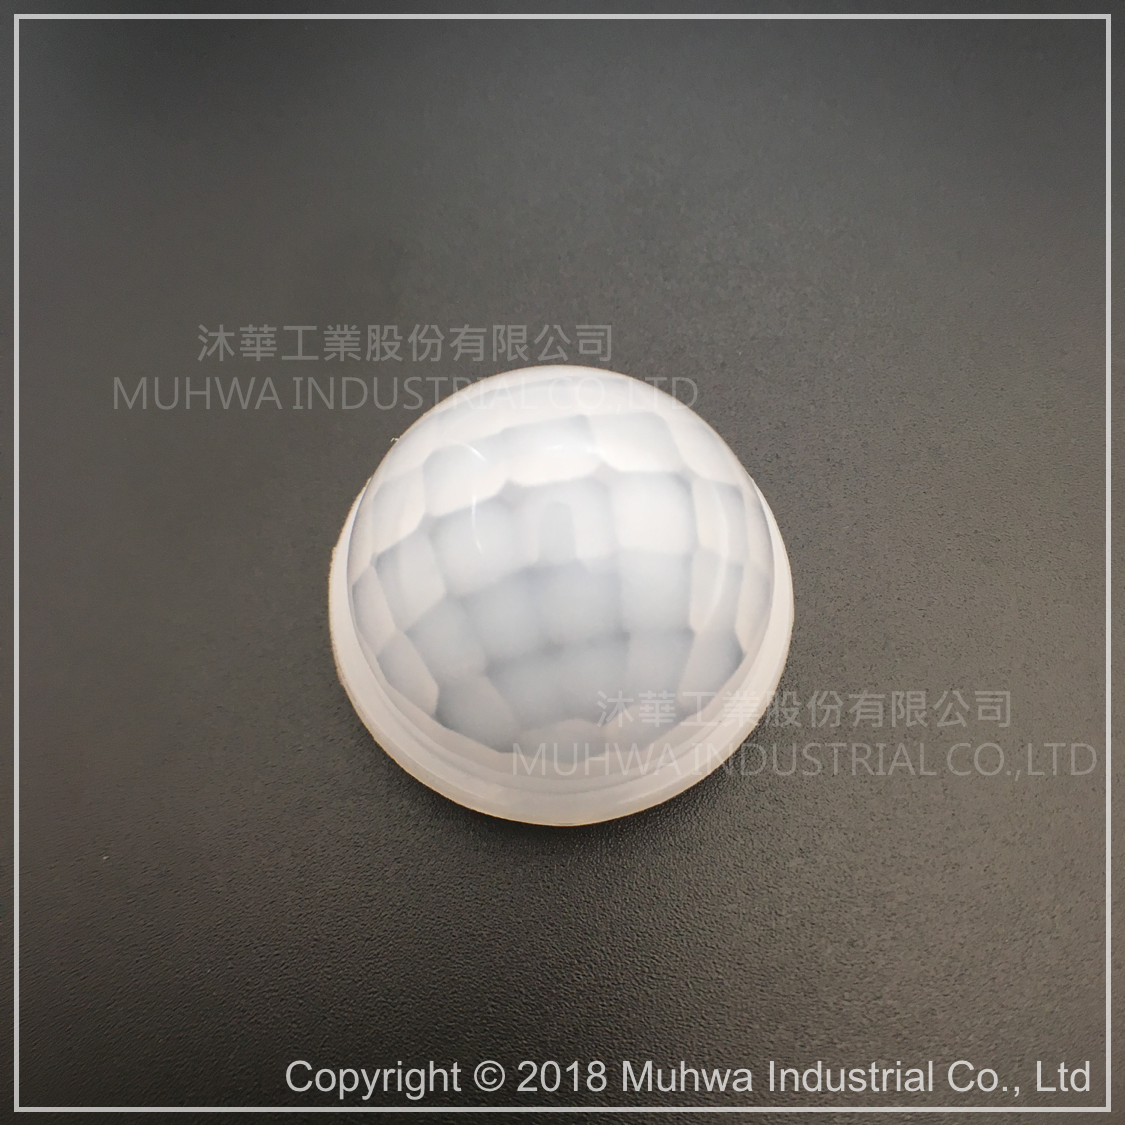 High quality Pir Lens Cover Quotes,China Pir Lens Cover Factory,Pir Lens Cover Purchasing